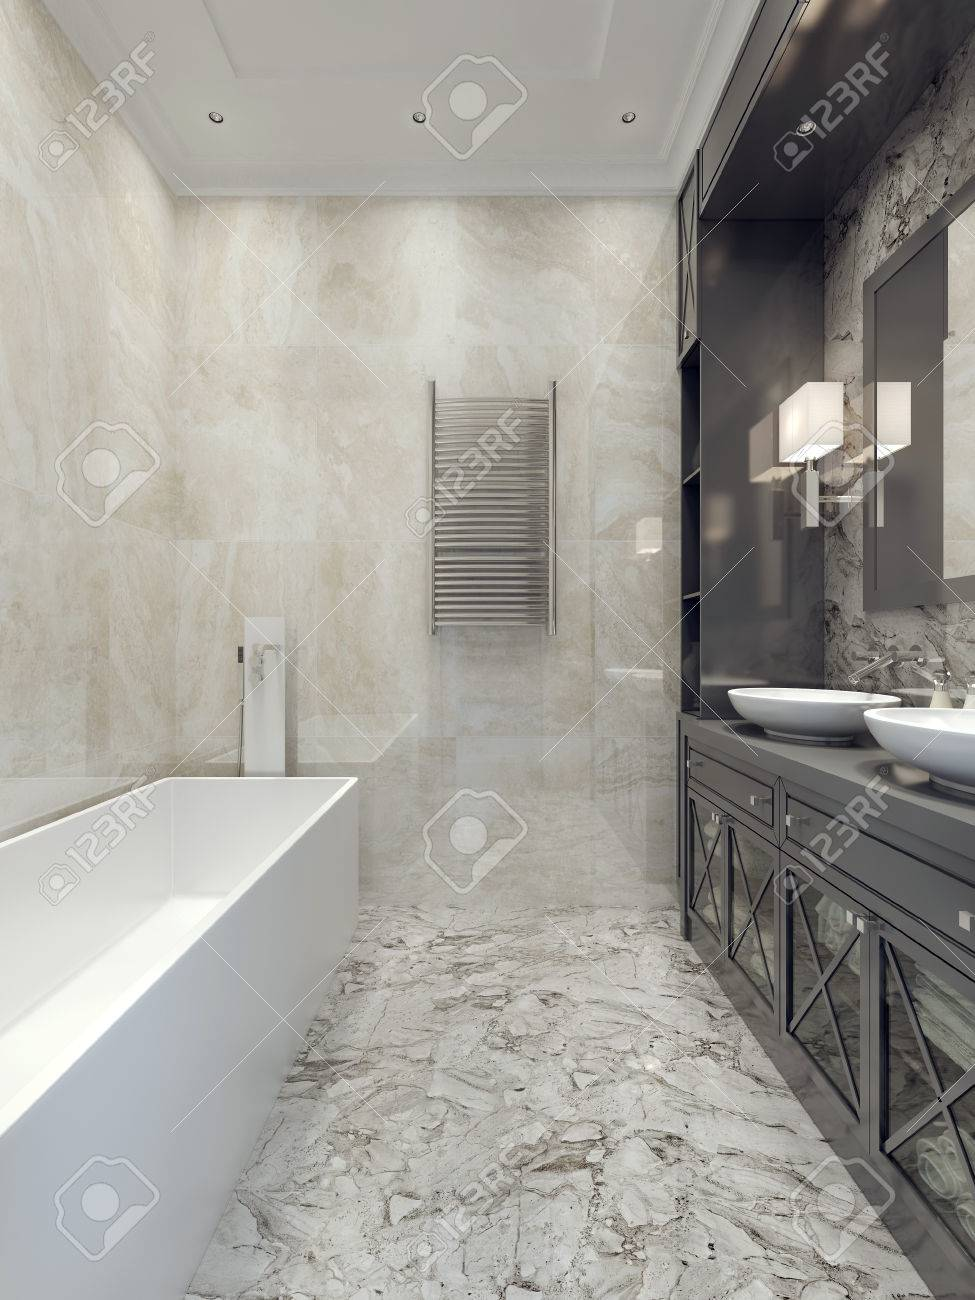 Art deco bathroom style. 3d render